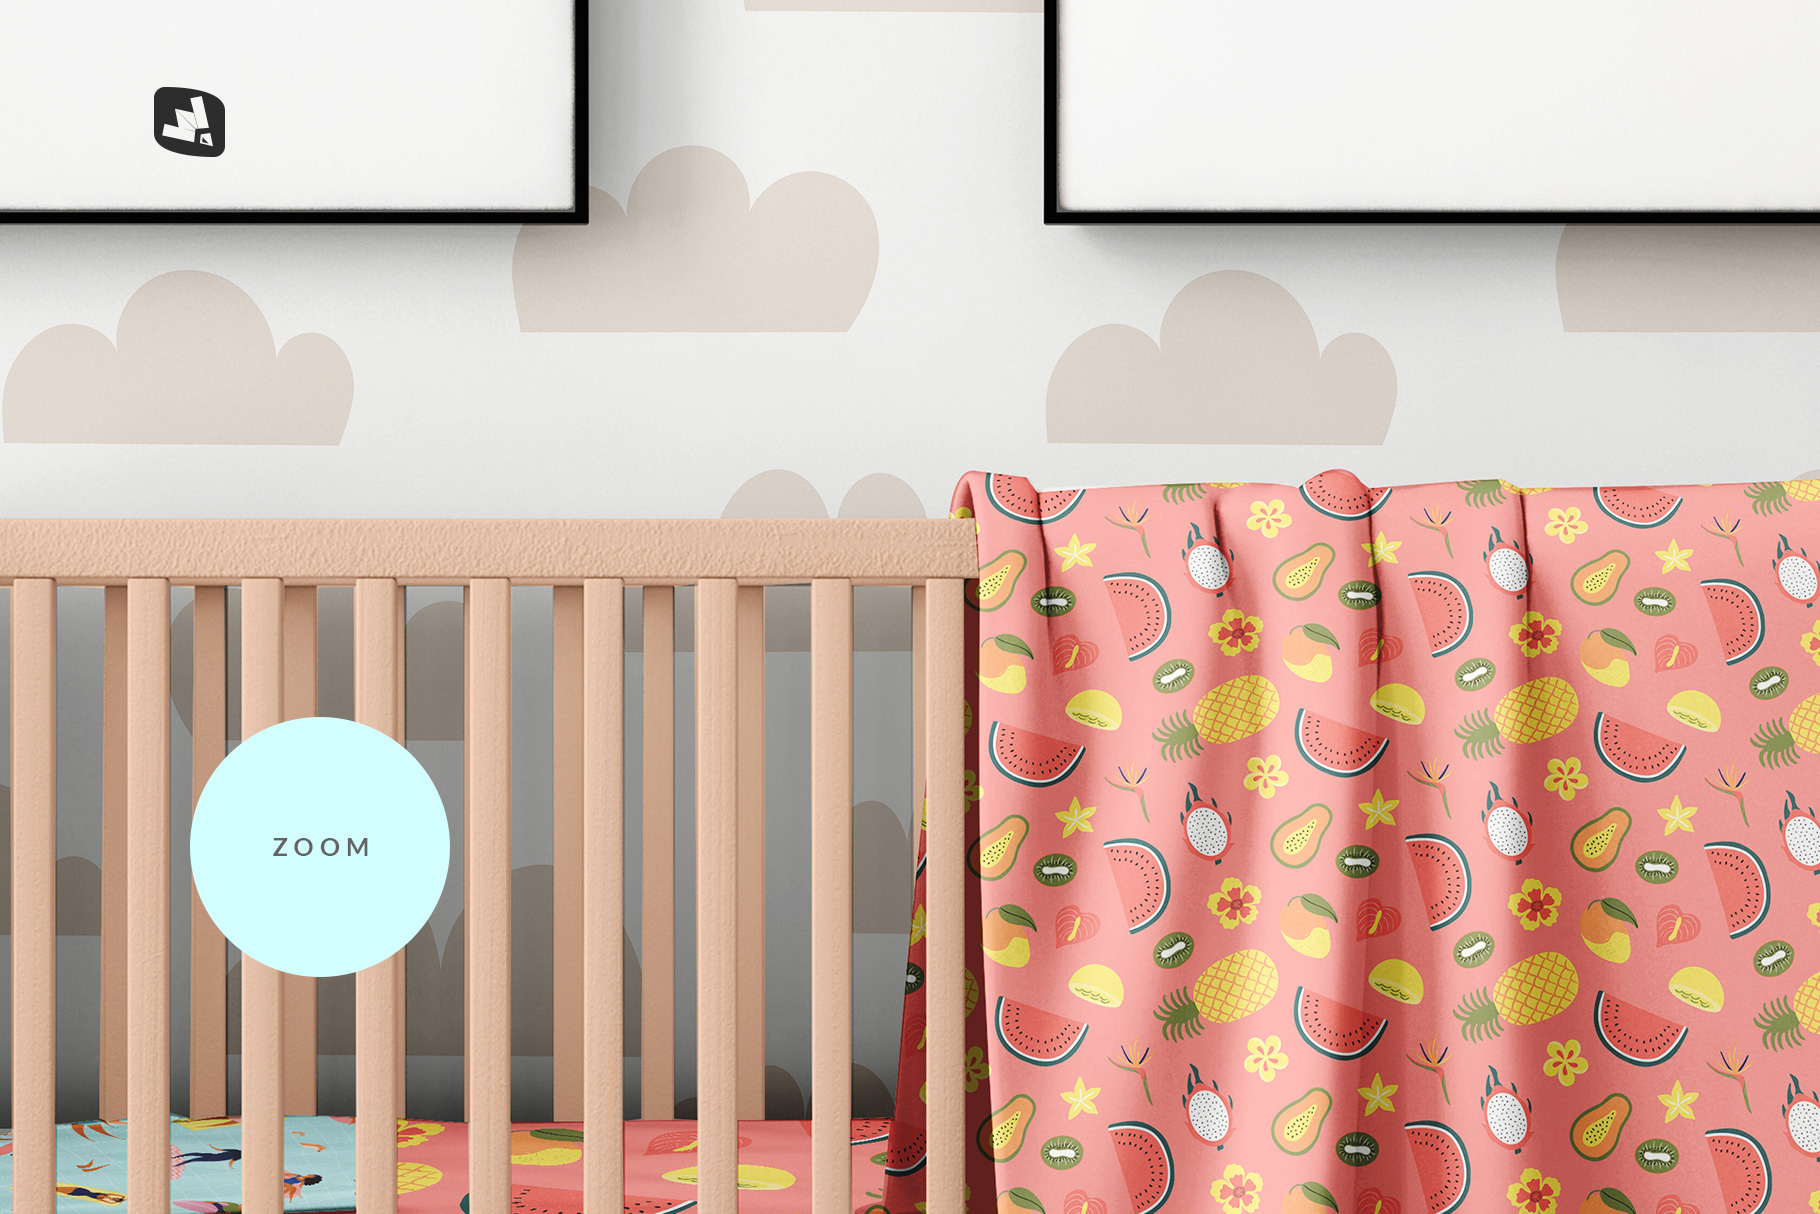 zoomed in image of the nursery interior mockup